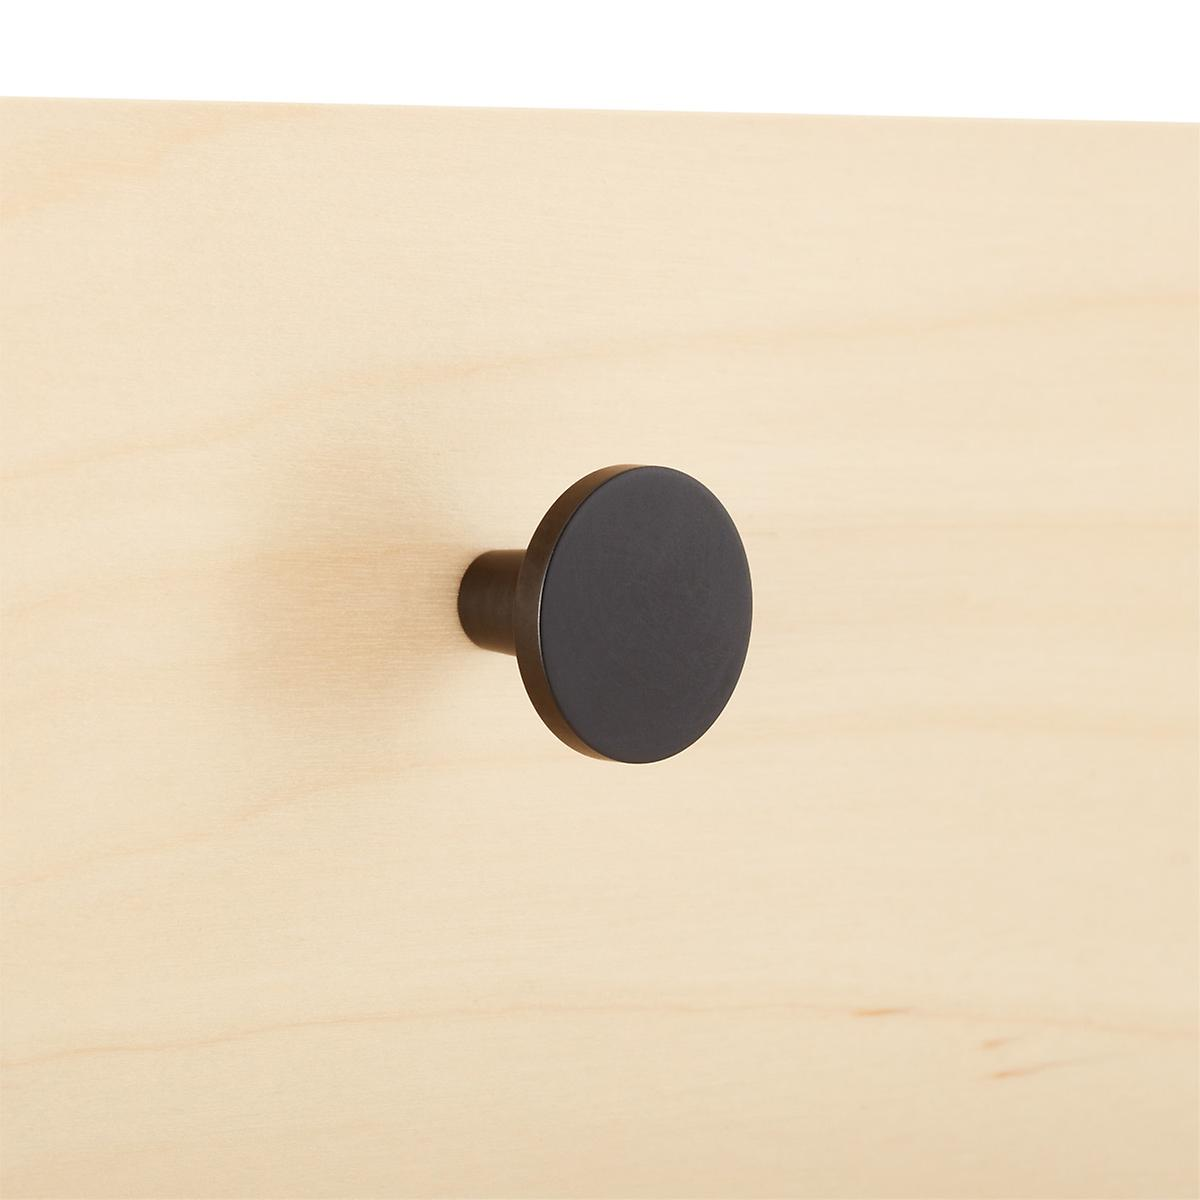 Elfa Decor Oil Rubbed Bronze Flat Knob